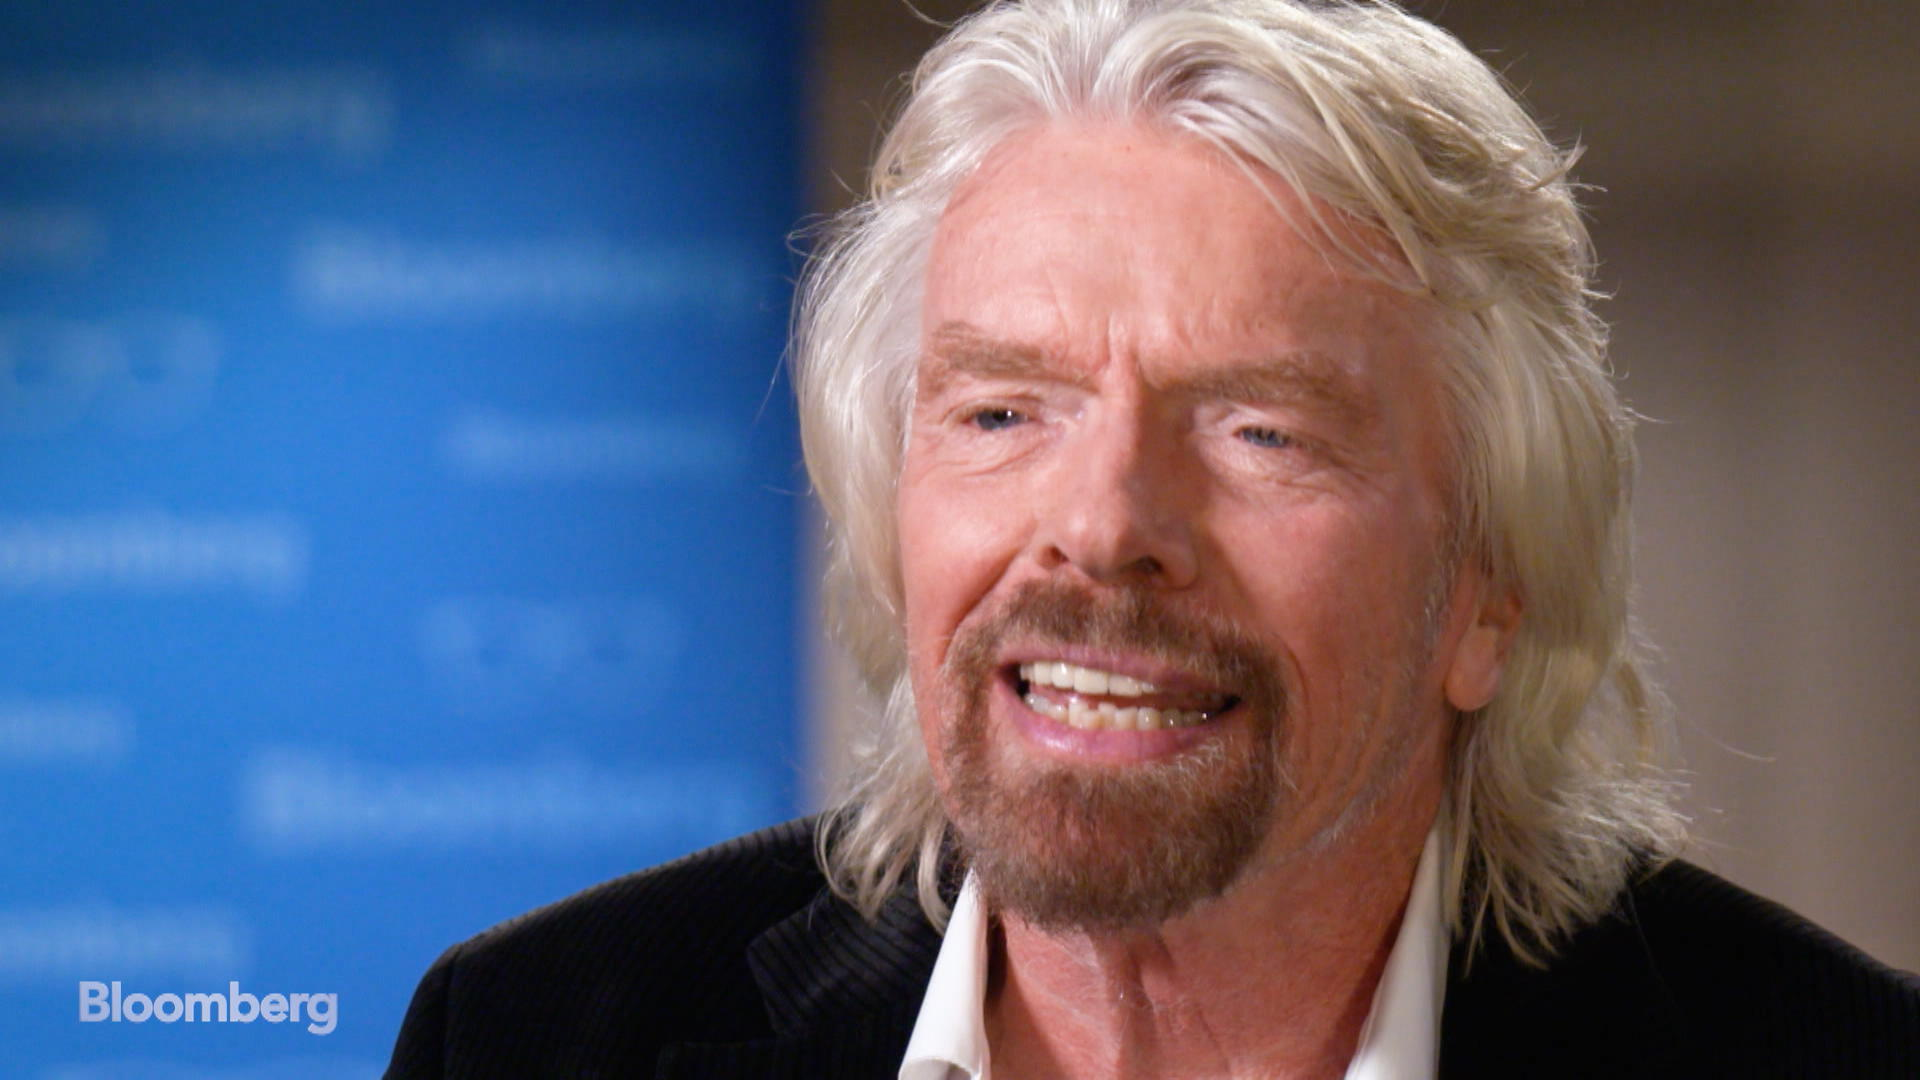 The Key to Richard Branson's Success: 'Great People'